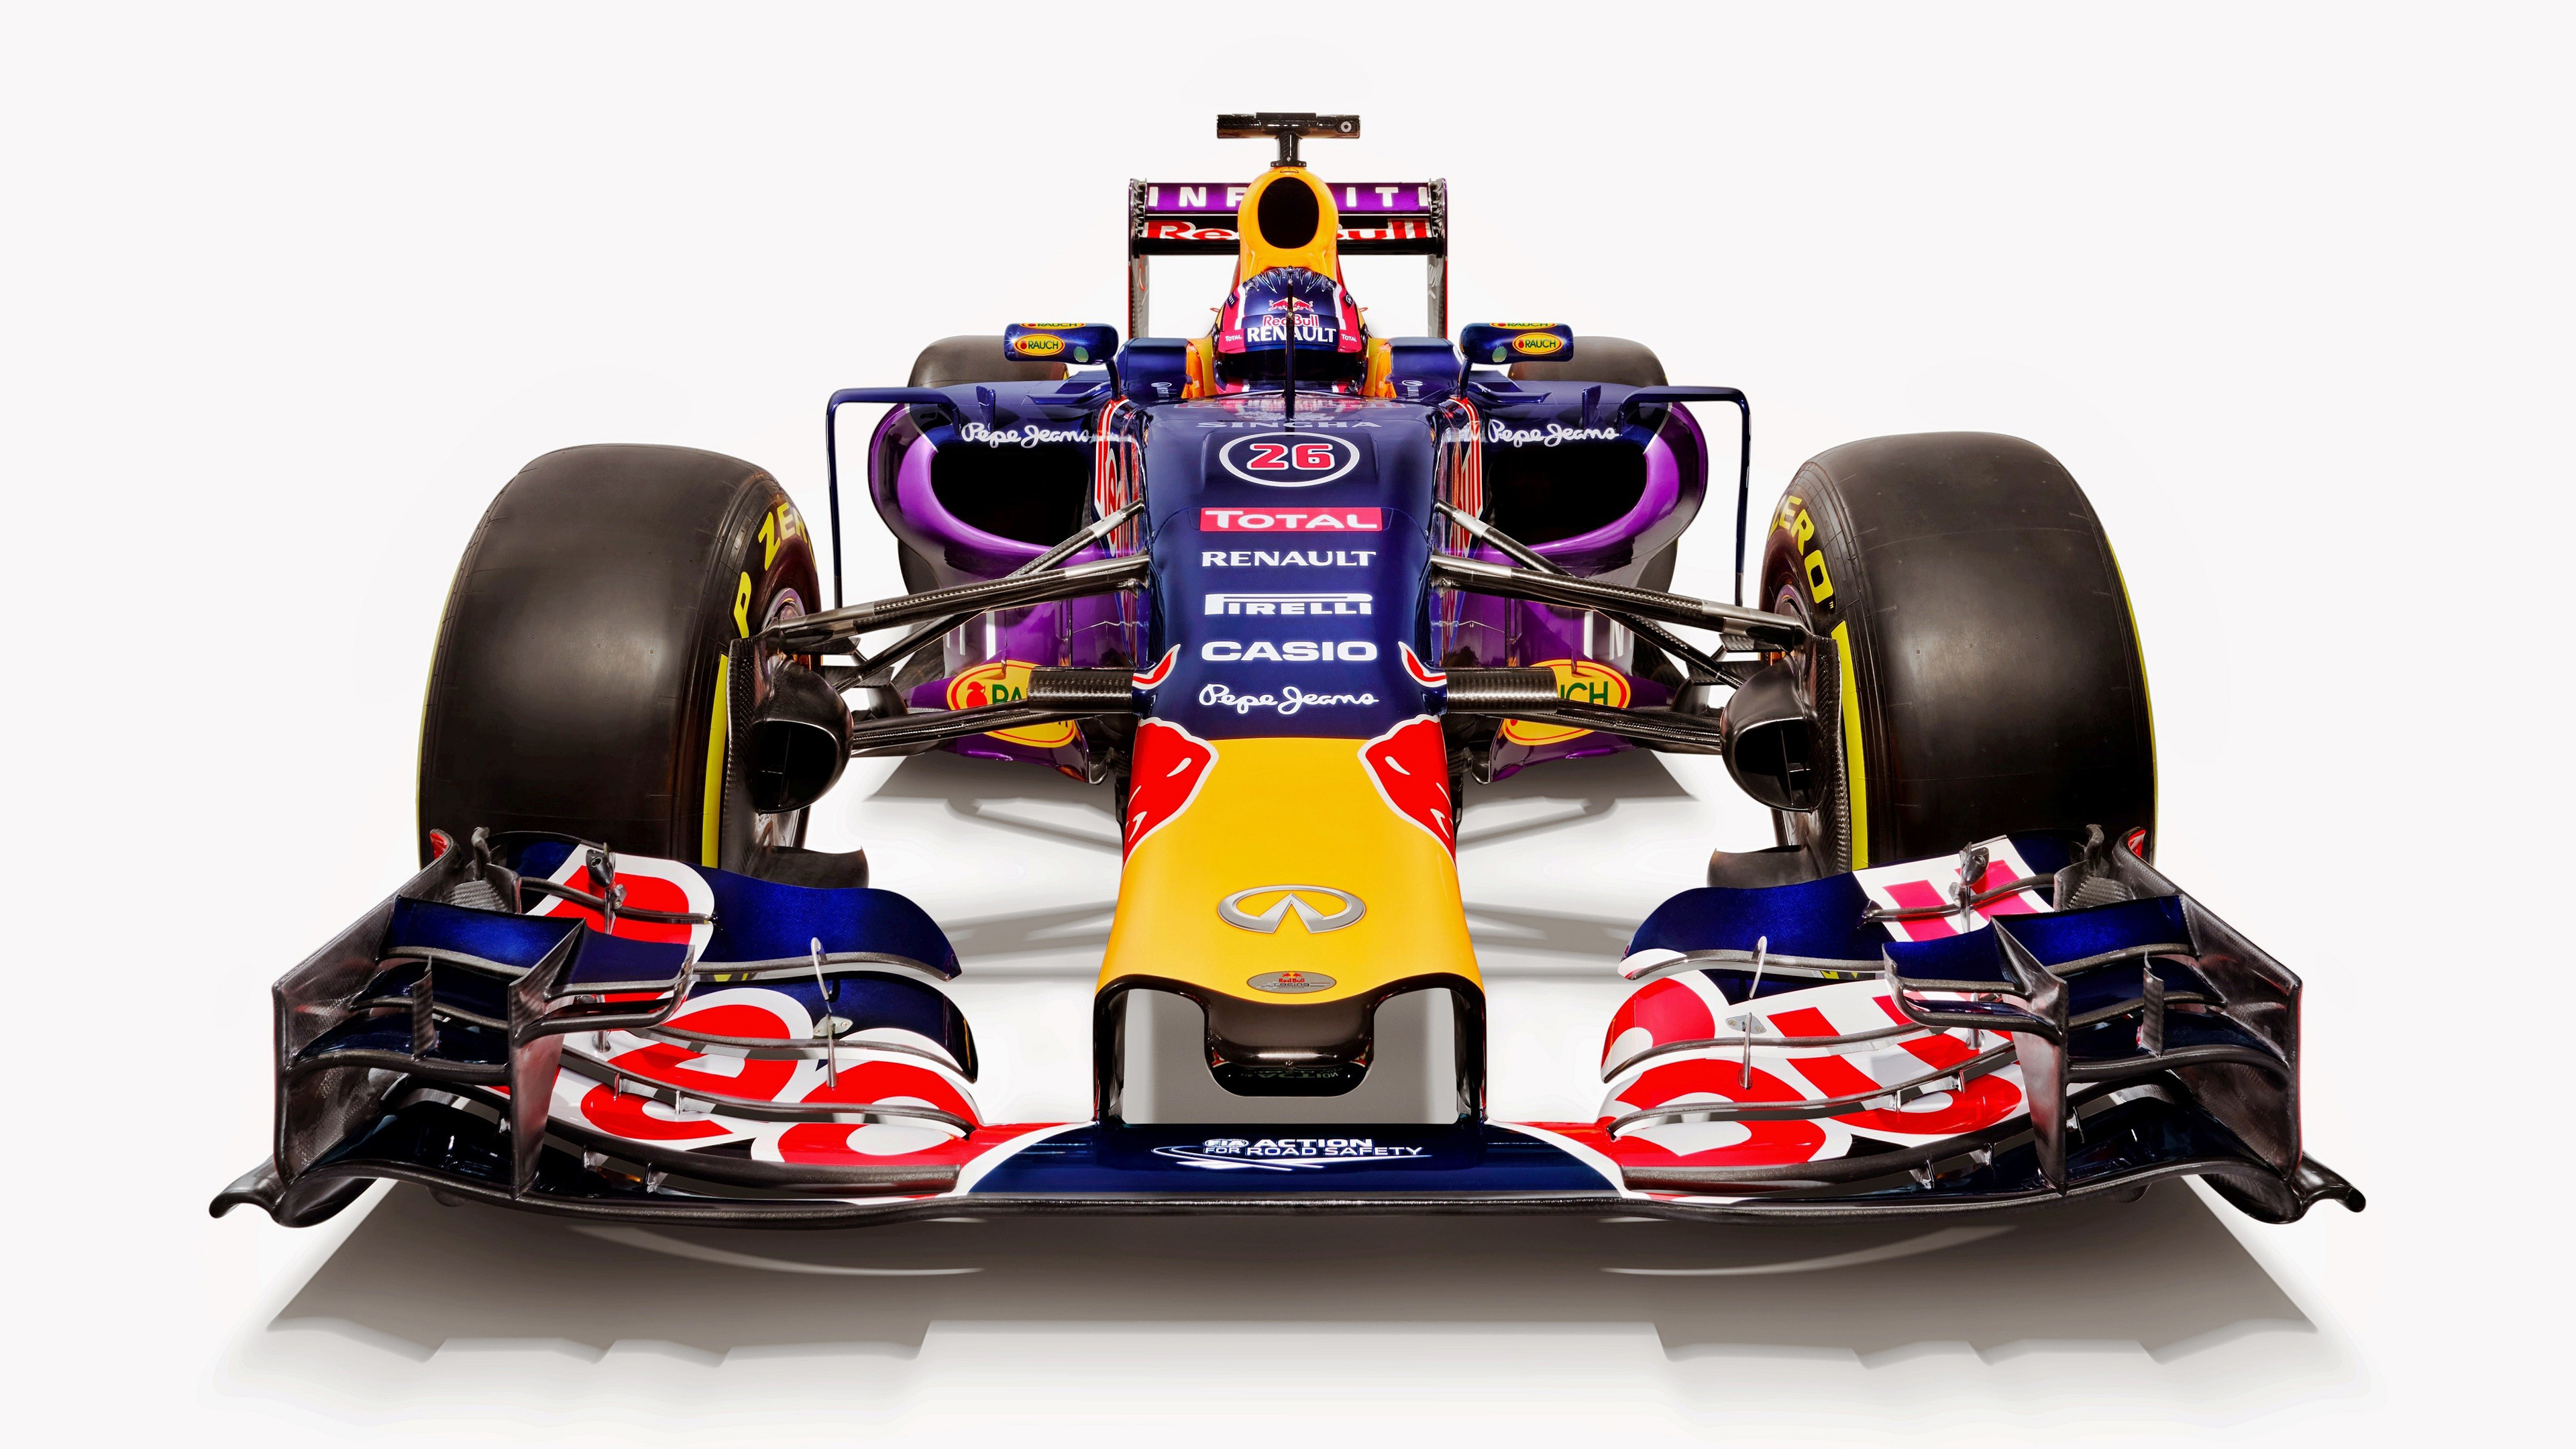 Red Bull Racing Rb12 2016 Formula 1 Wallpaper Hd Car